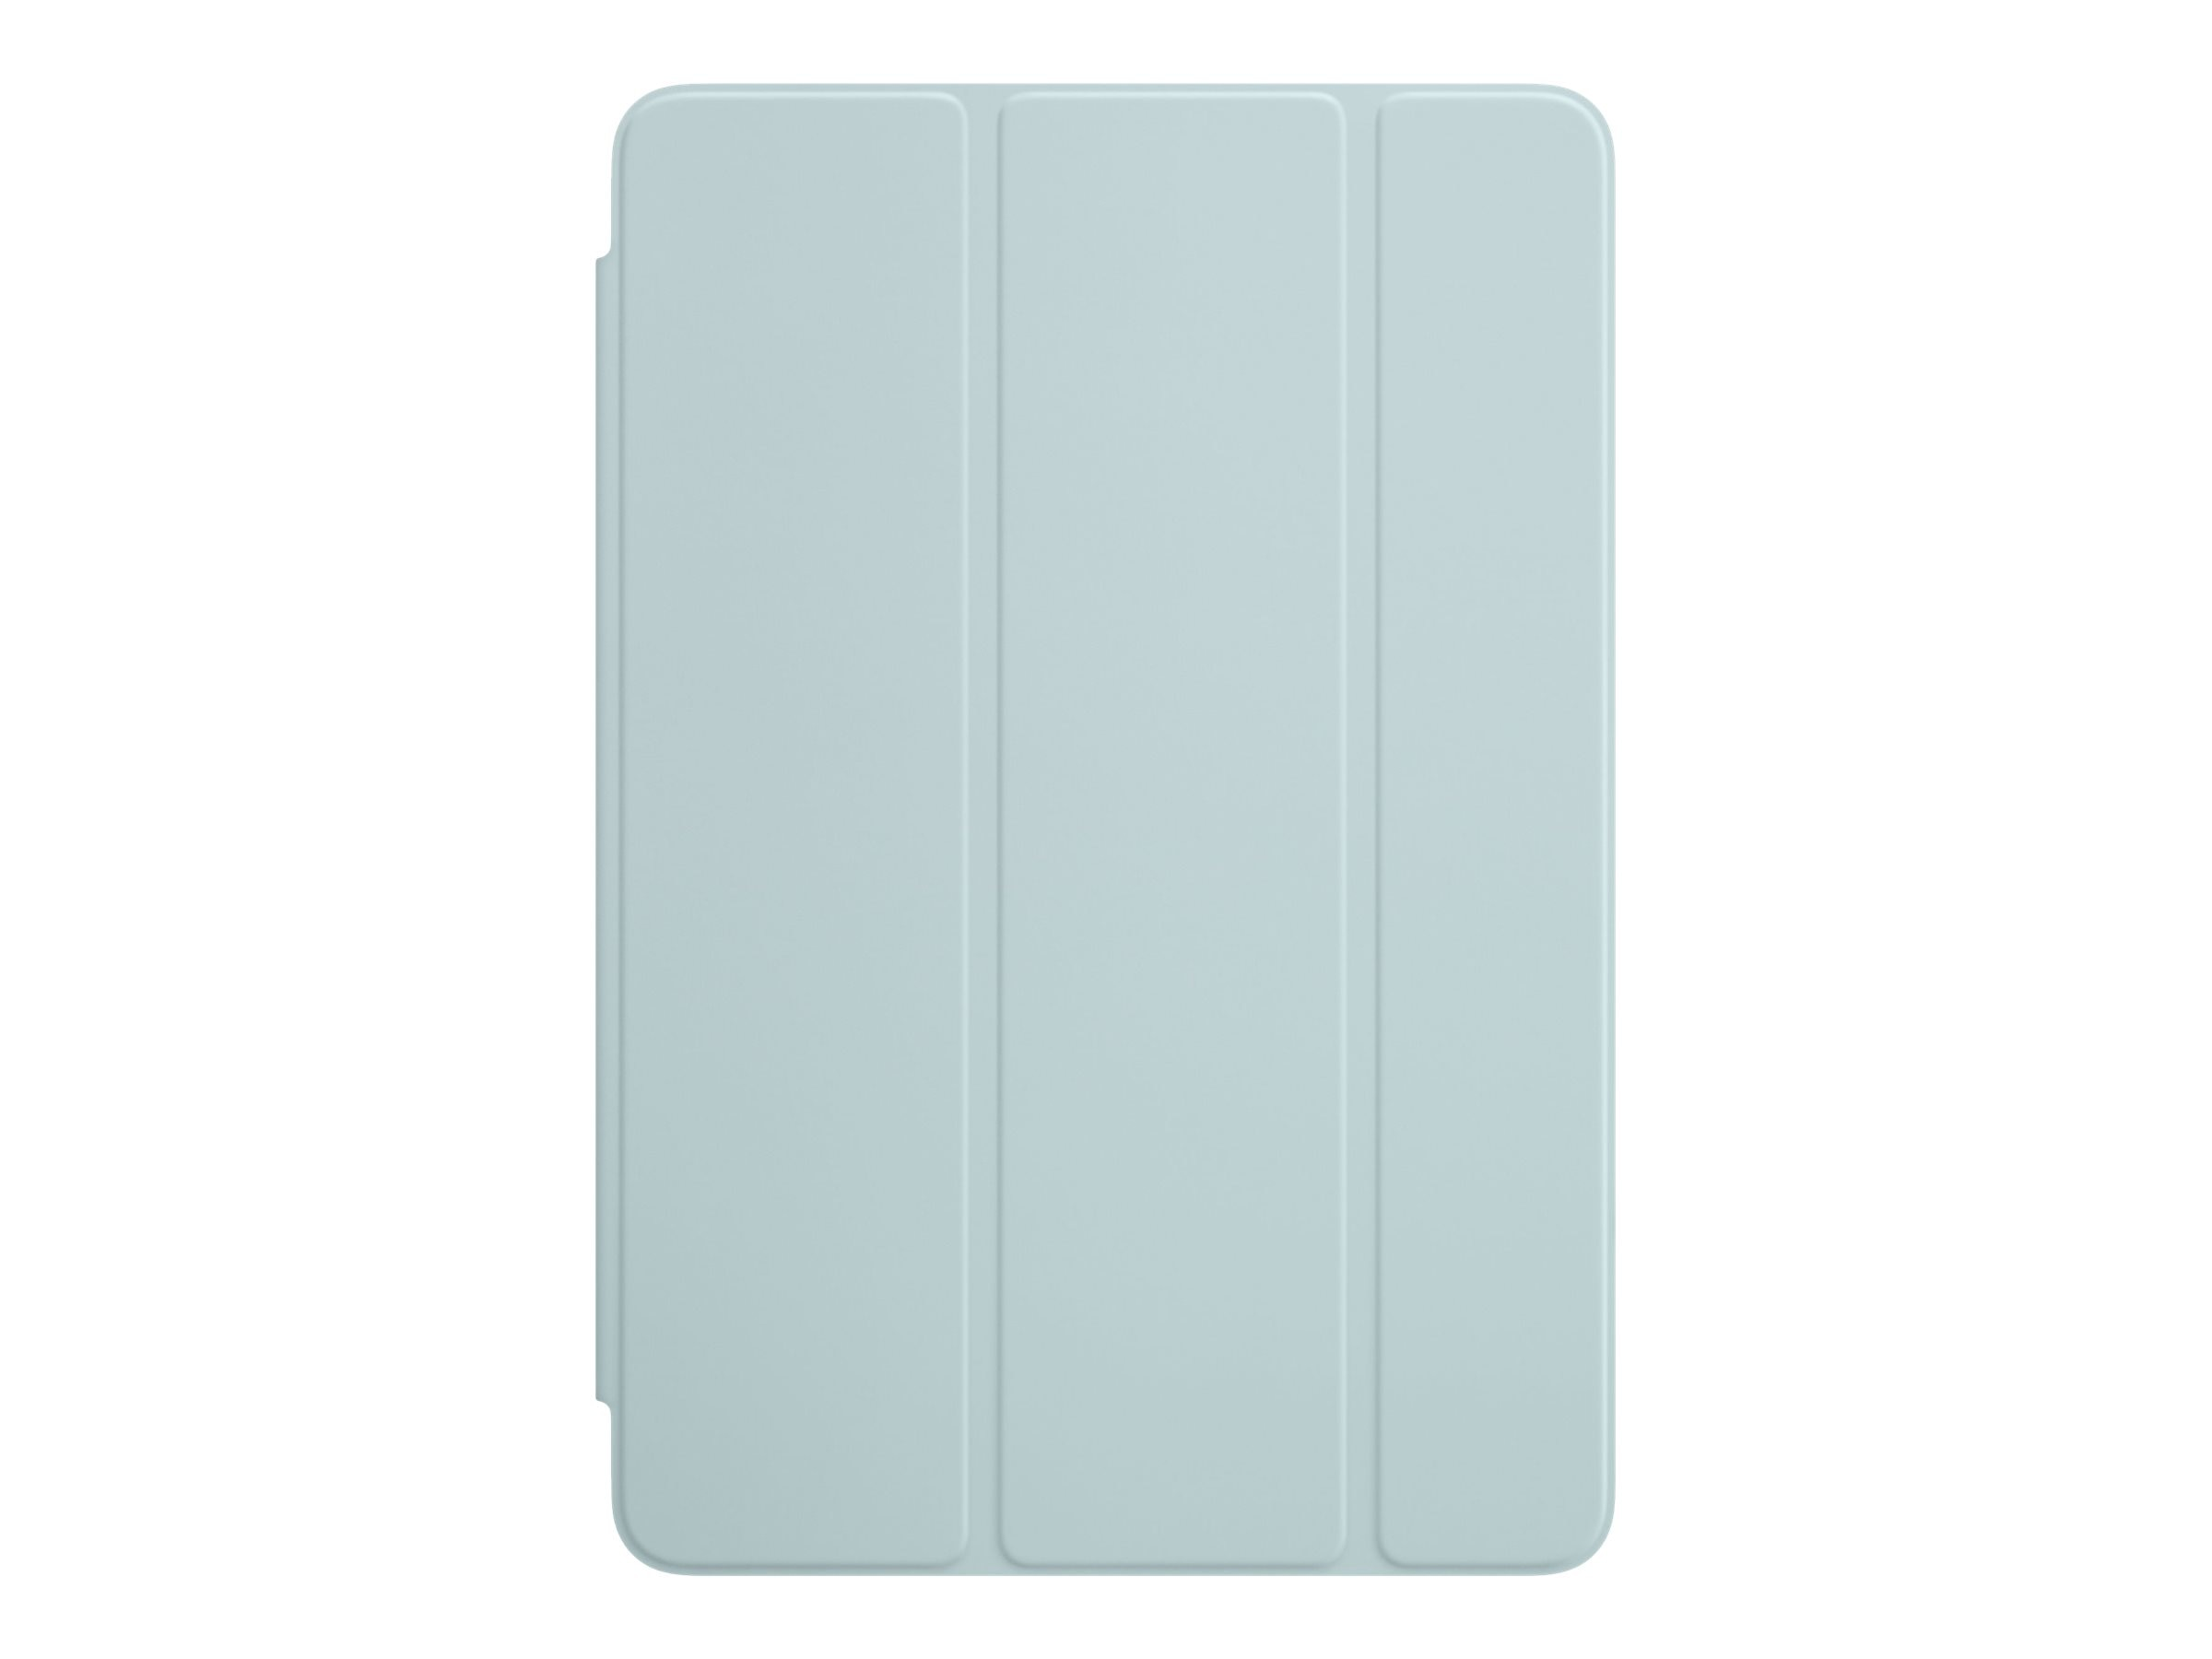 Apple Smart Cover for iPad mini 4, Turquoise